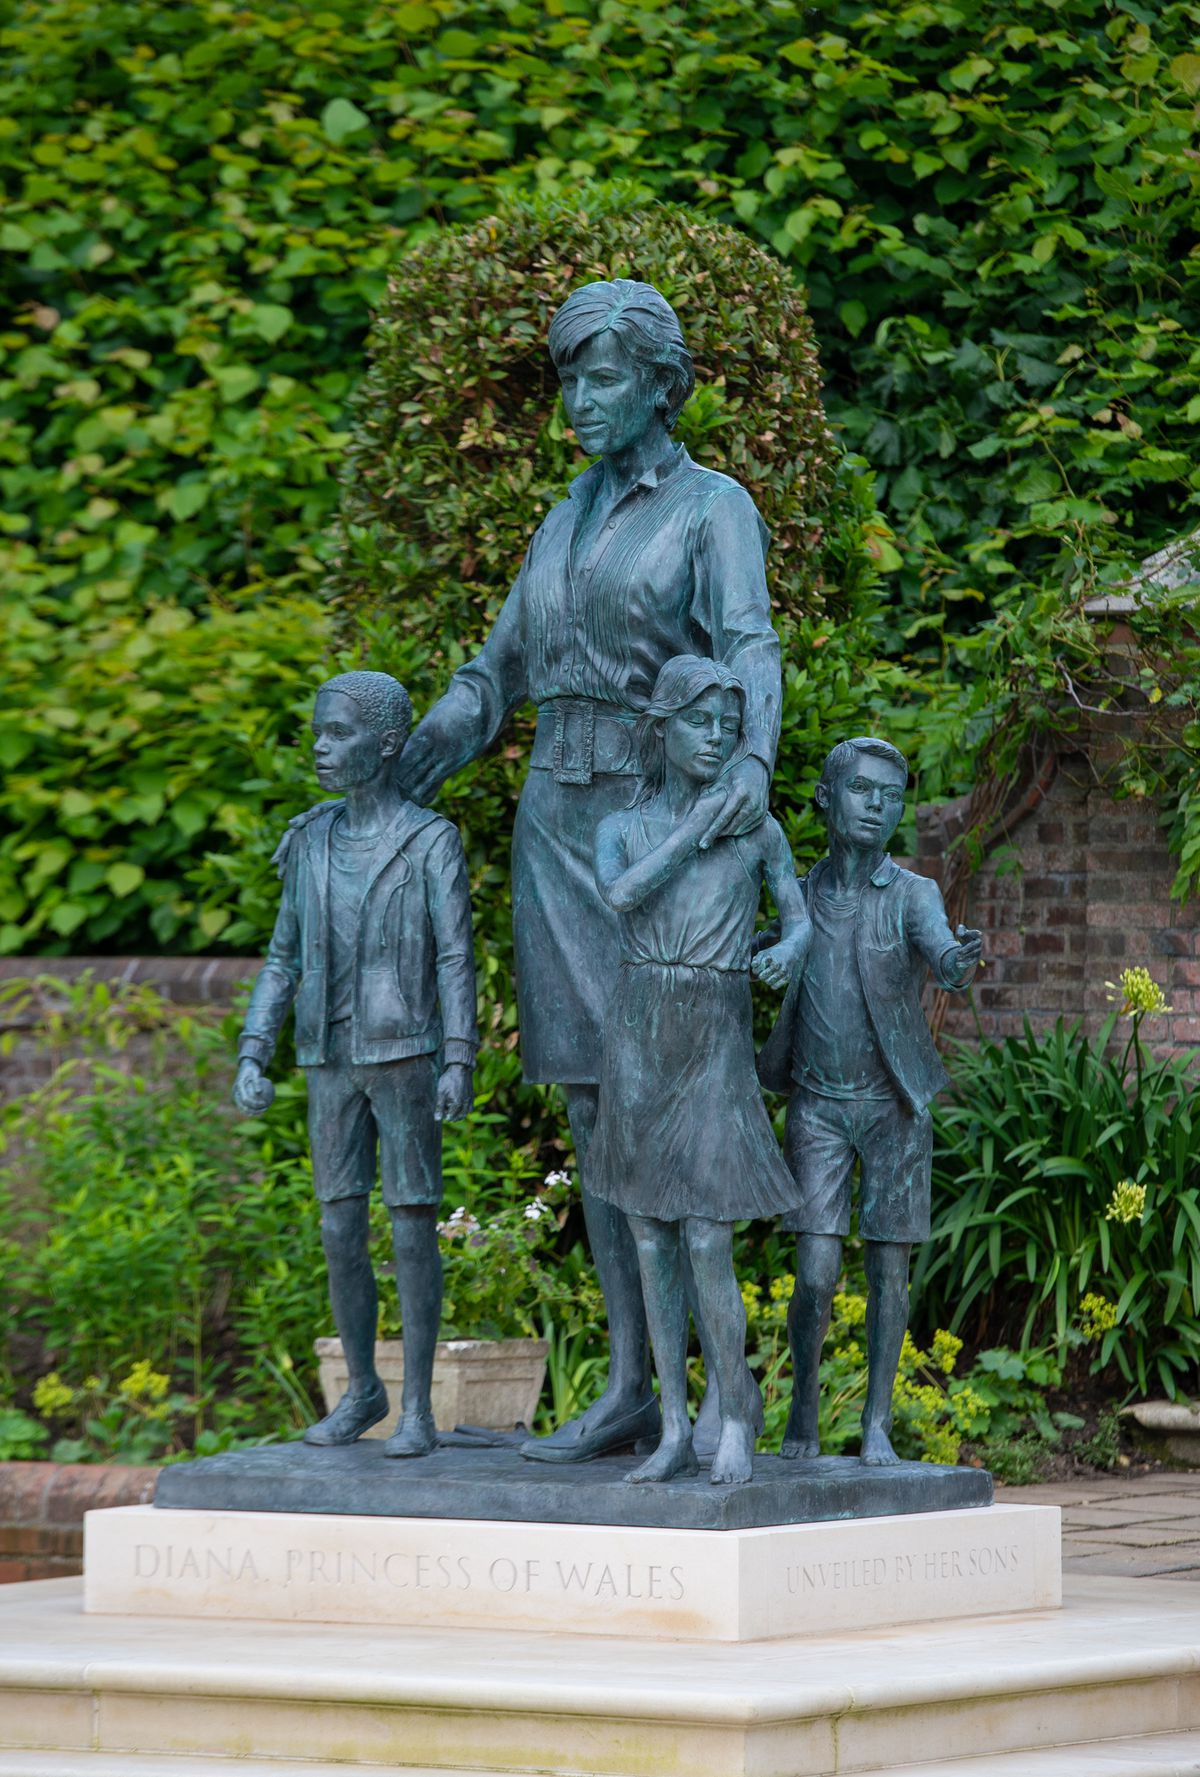 The statue stands in the grounds of Kensington Palace